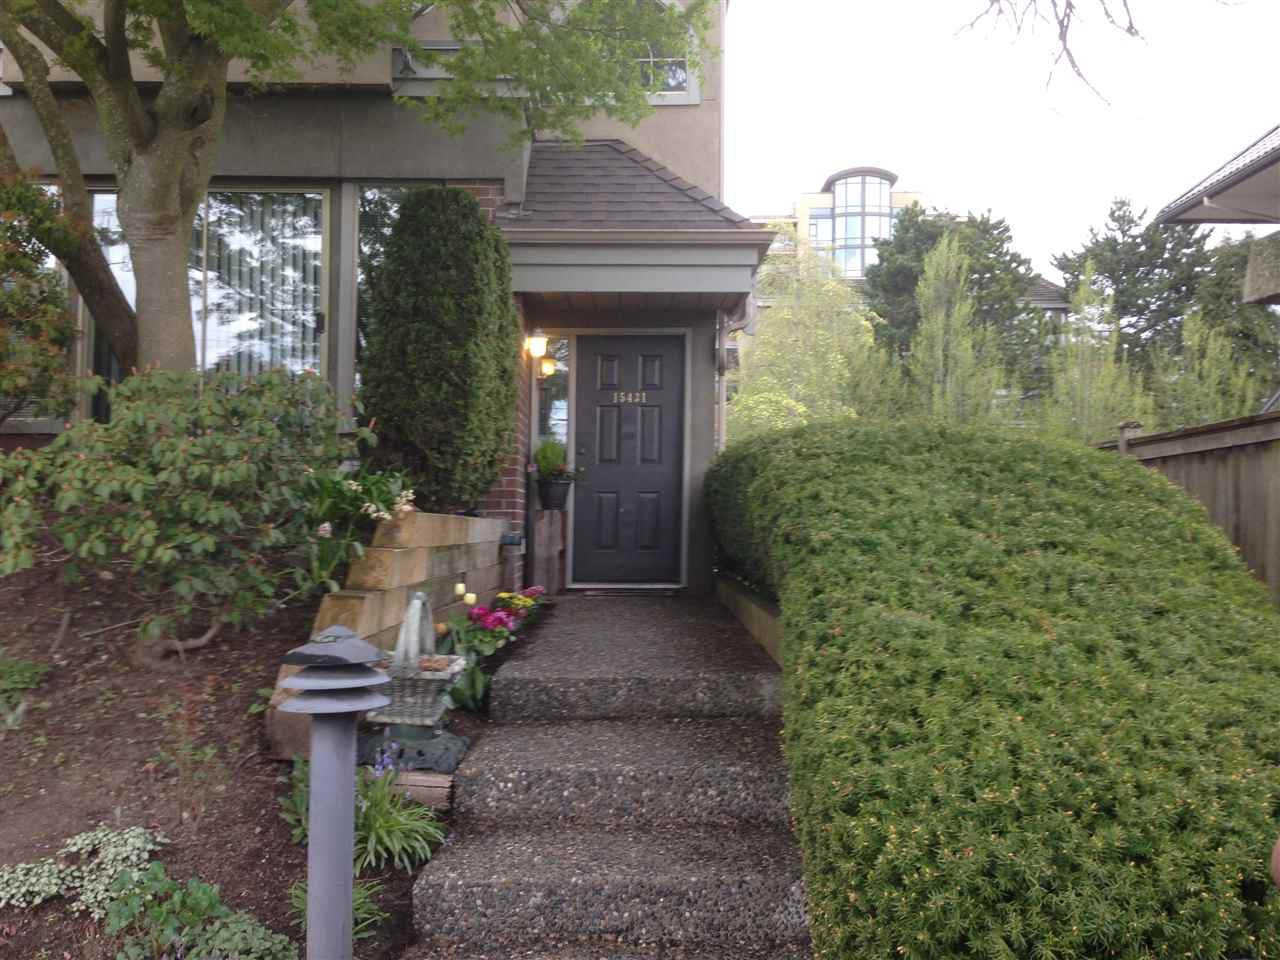 Photo 2: Photos: 15431 RUSSELL Avenue: White Rock Townhouse for sale (South Surrey White Rock)  : MLS®# R2154602